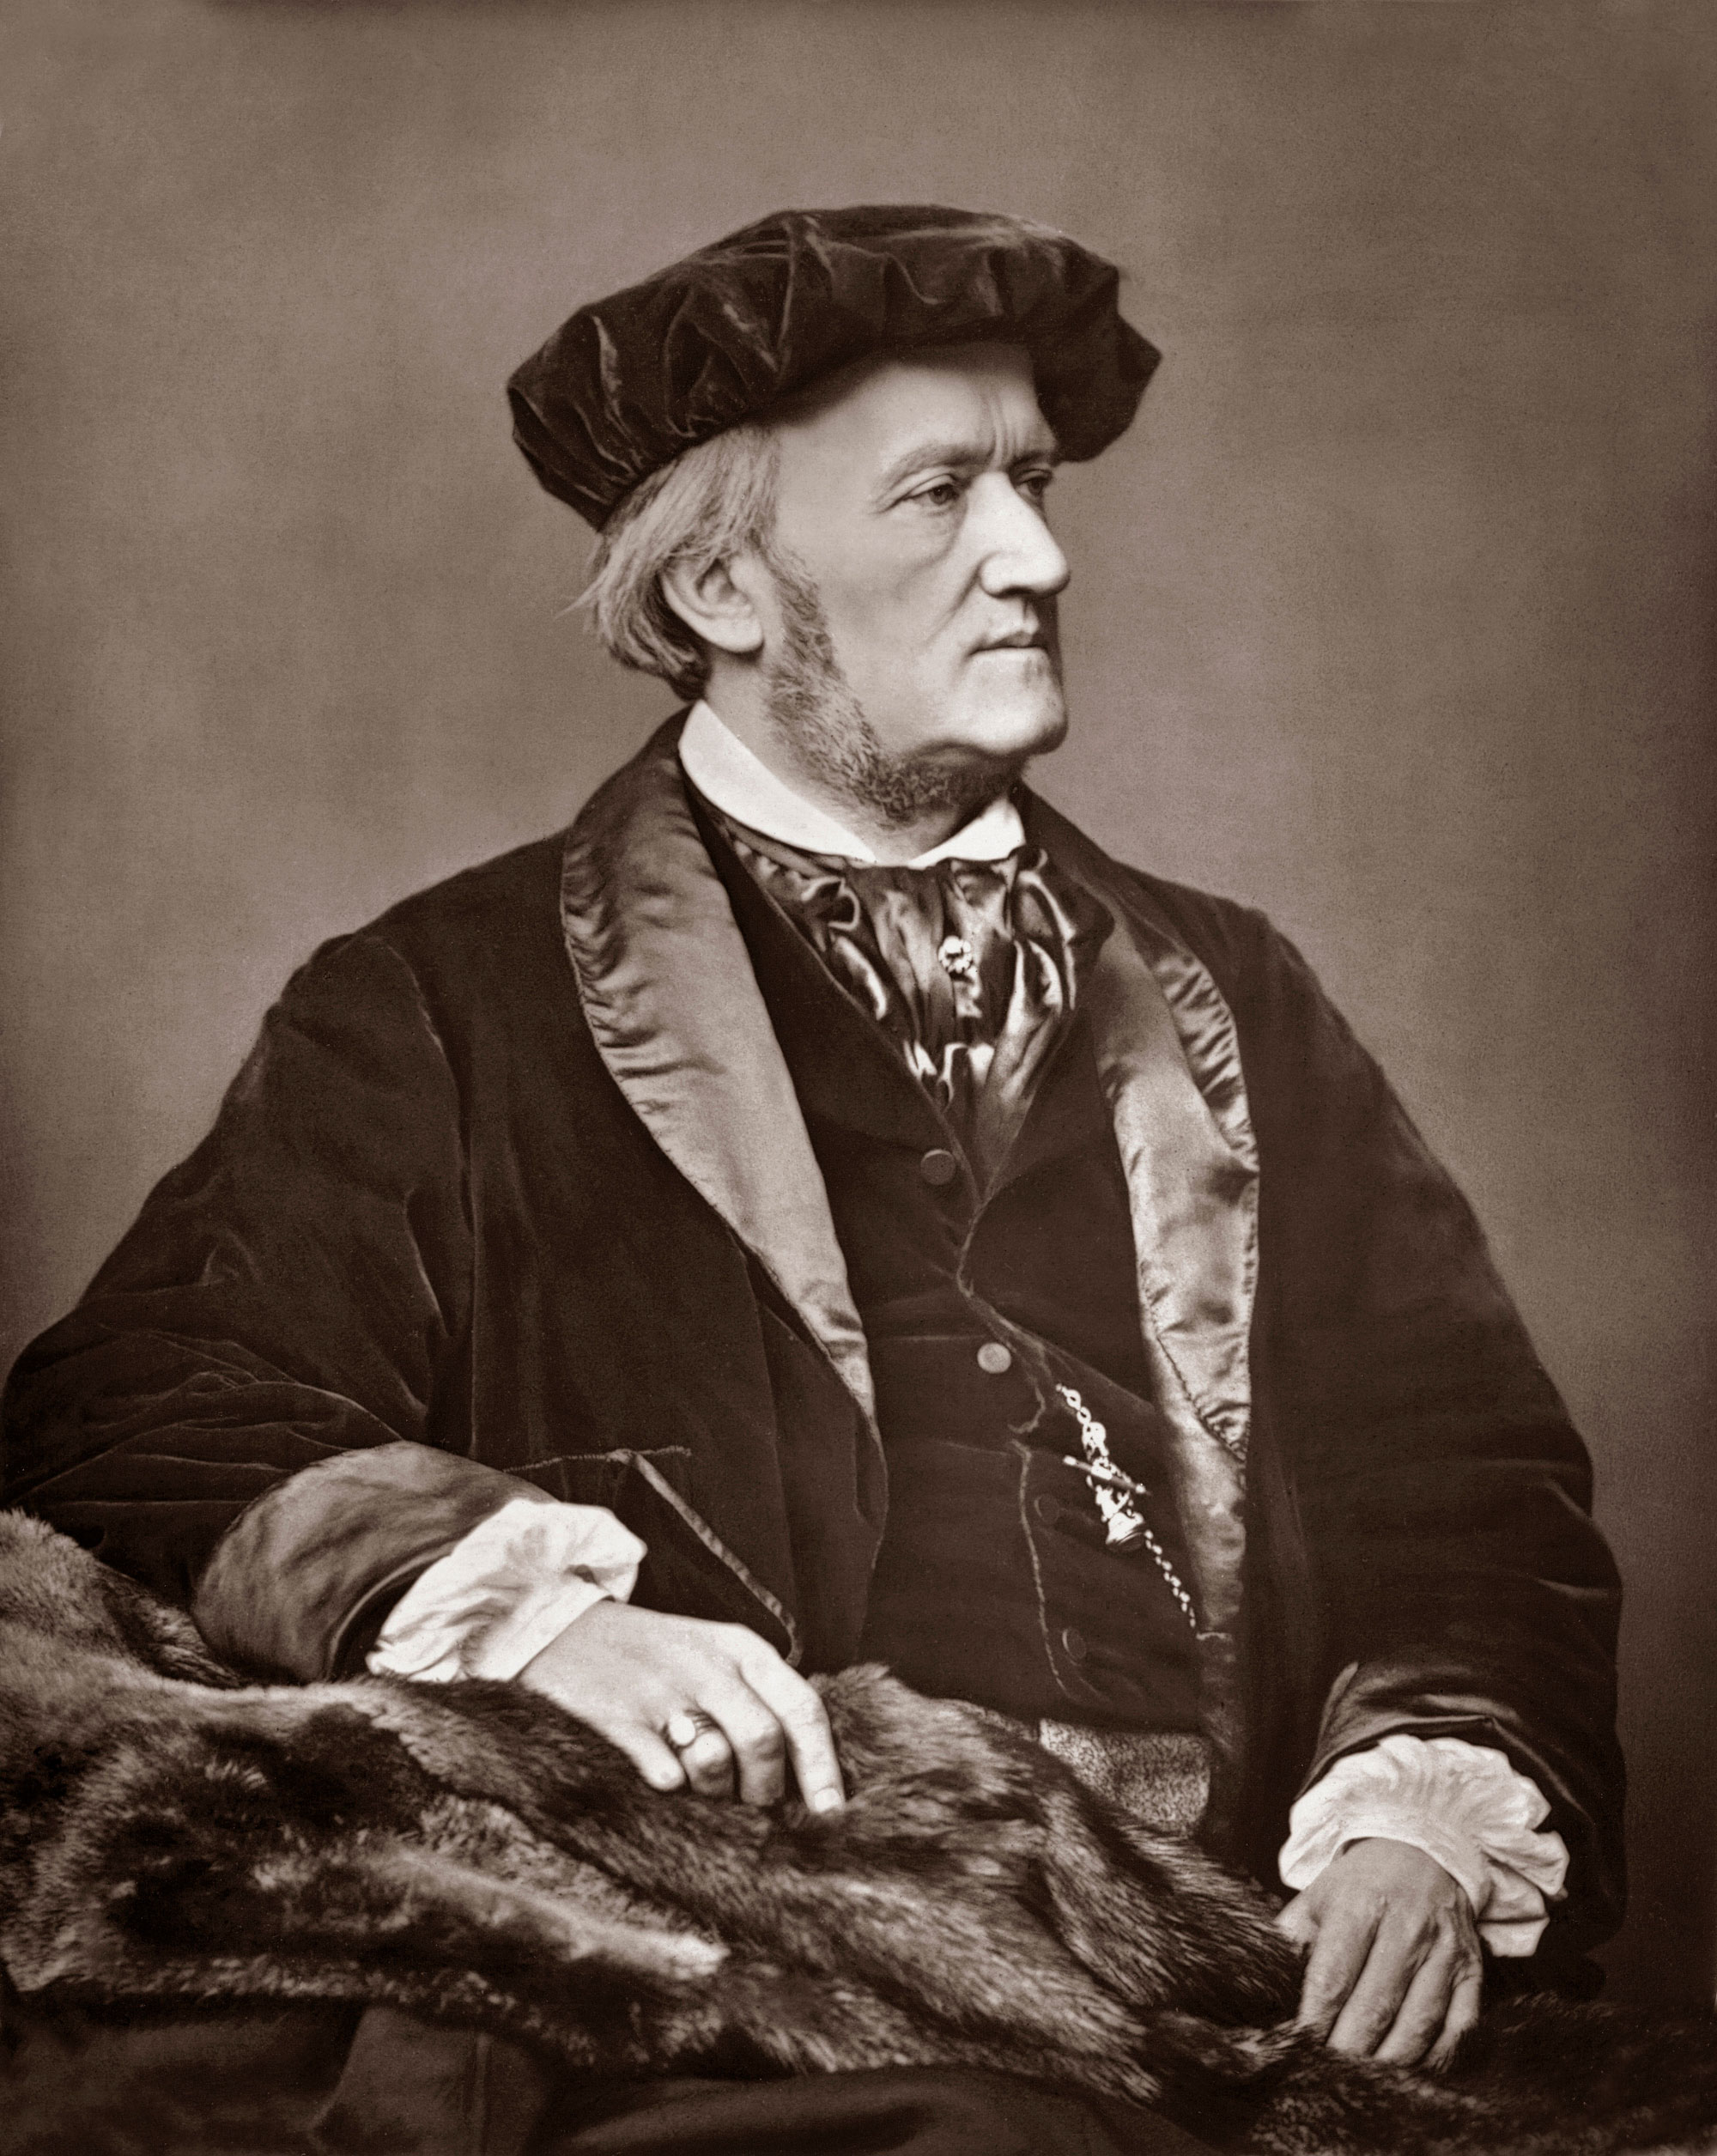 Le compositeur Richard Wagner